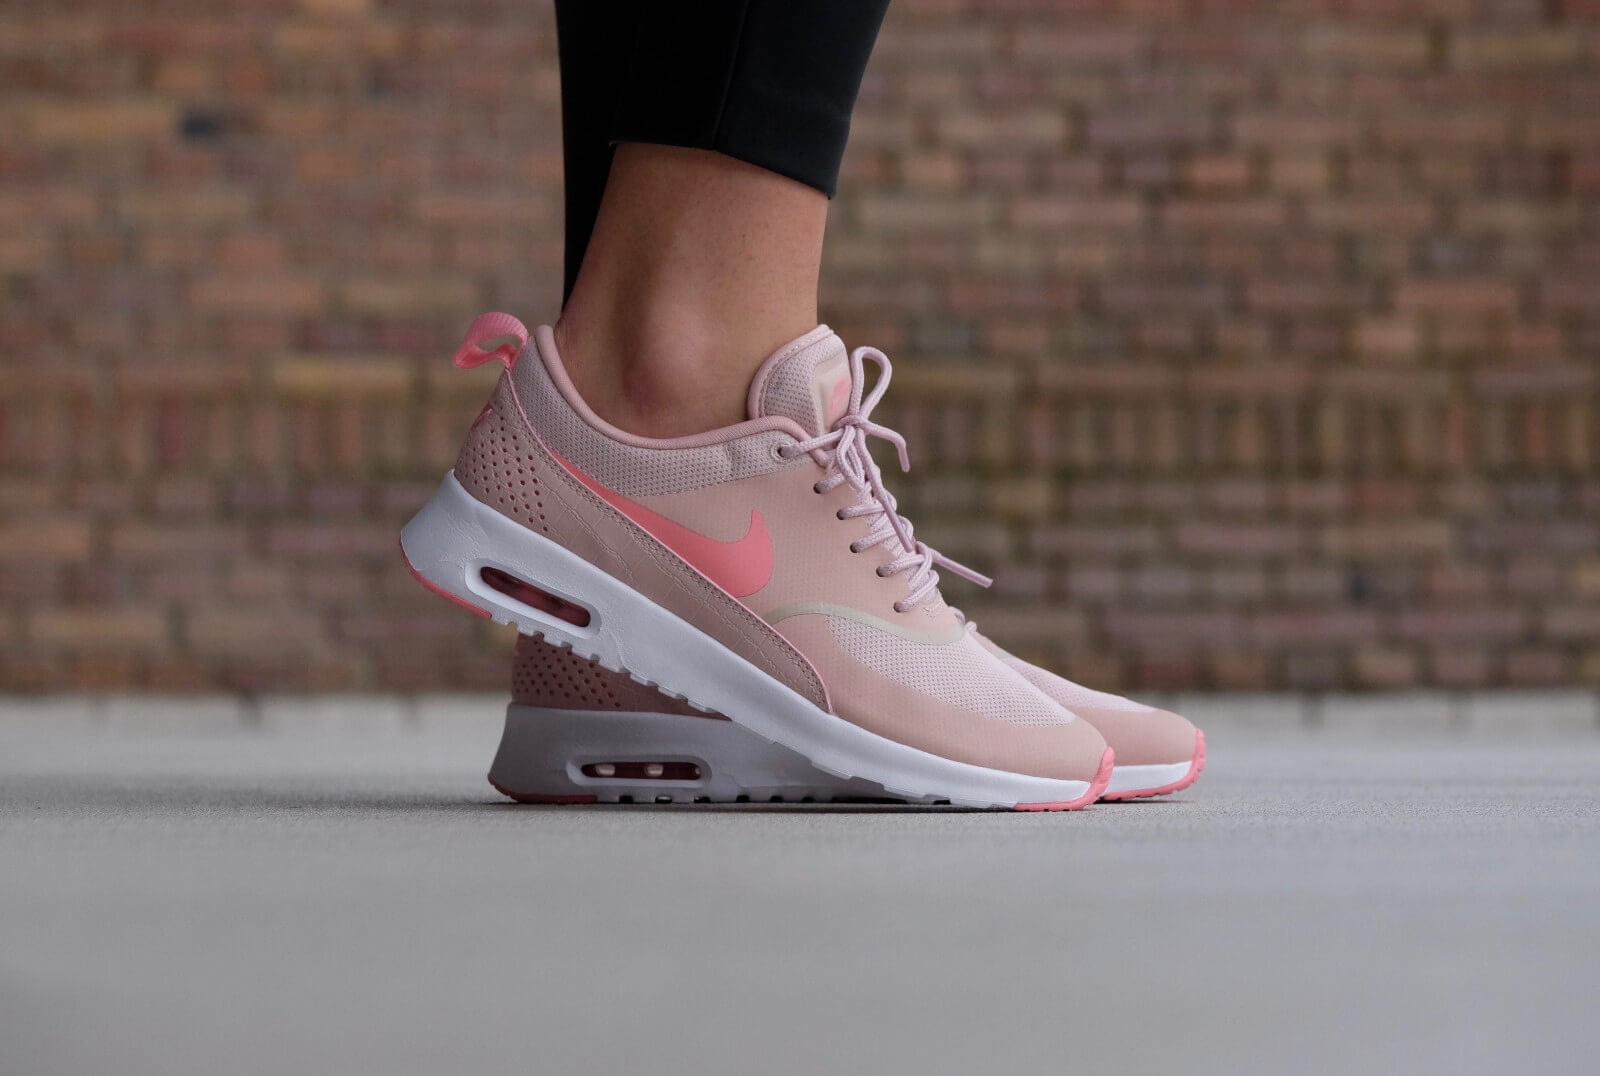 mercenario Europa zorro  Nike WMNS Air Max Thea Pink Oxford/Bright Melon-White - 599409-610